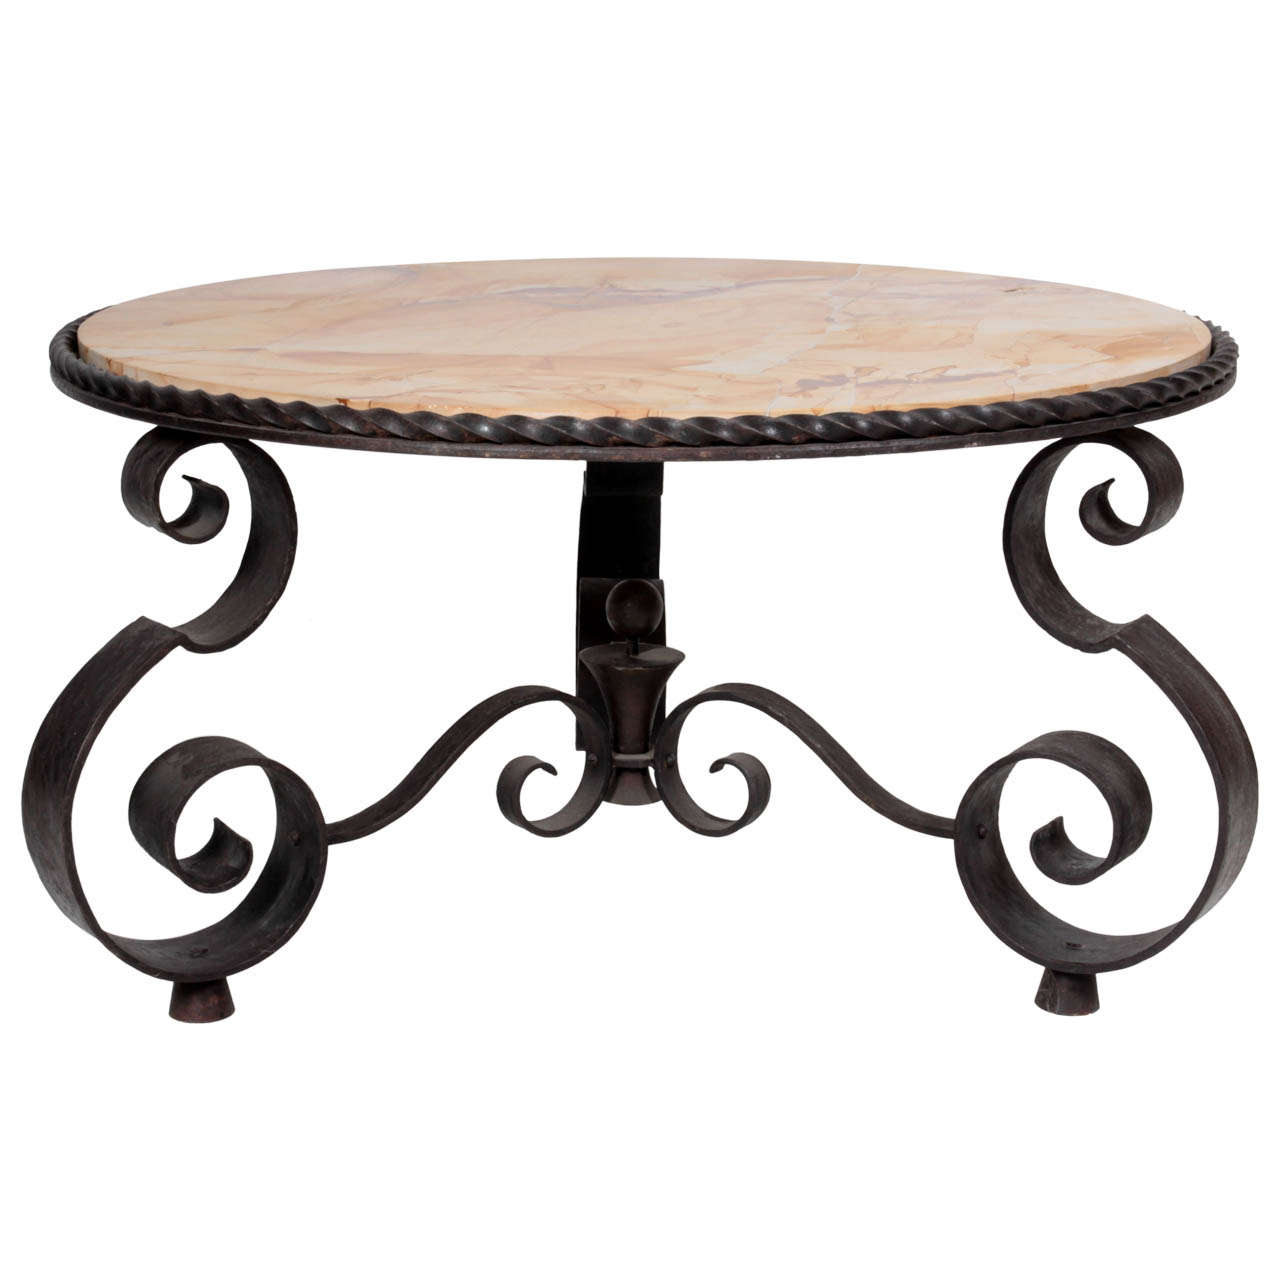 Wrought Iron Coffee Table With Drawers: Raymond Subes Or French Art Deco Wrought Iron Coffee Table